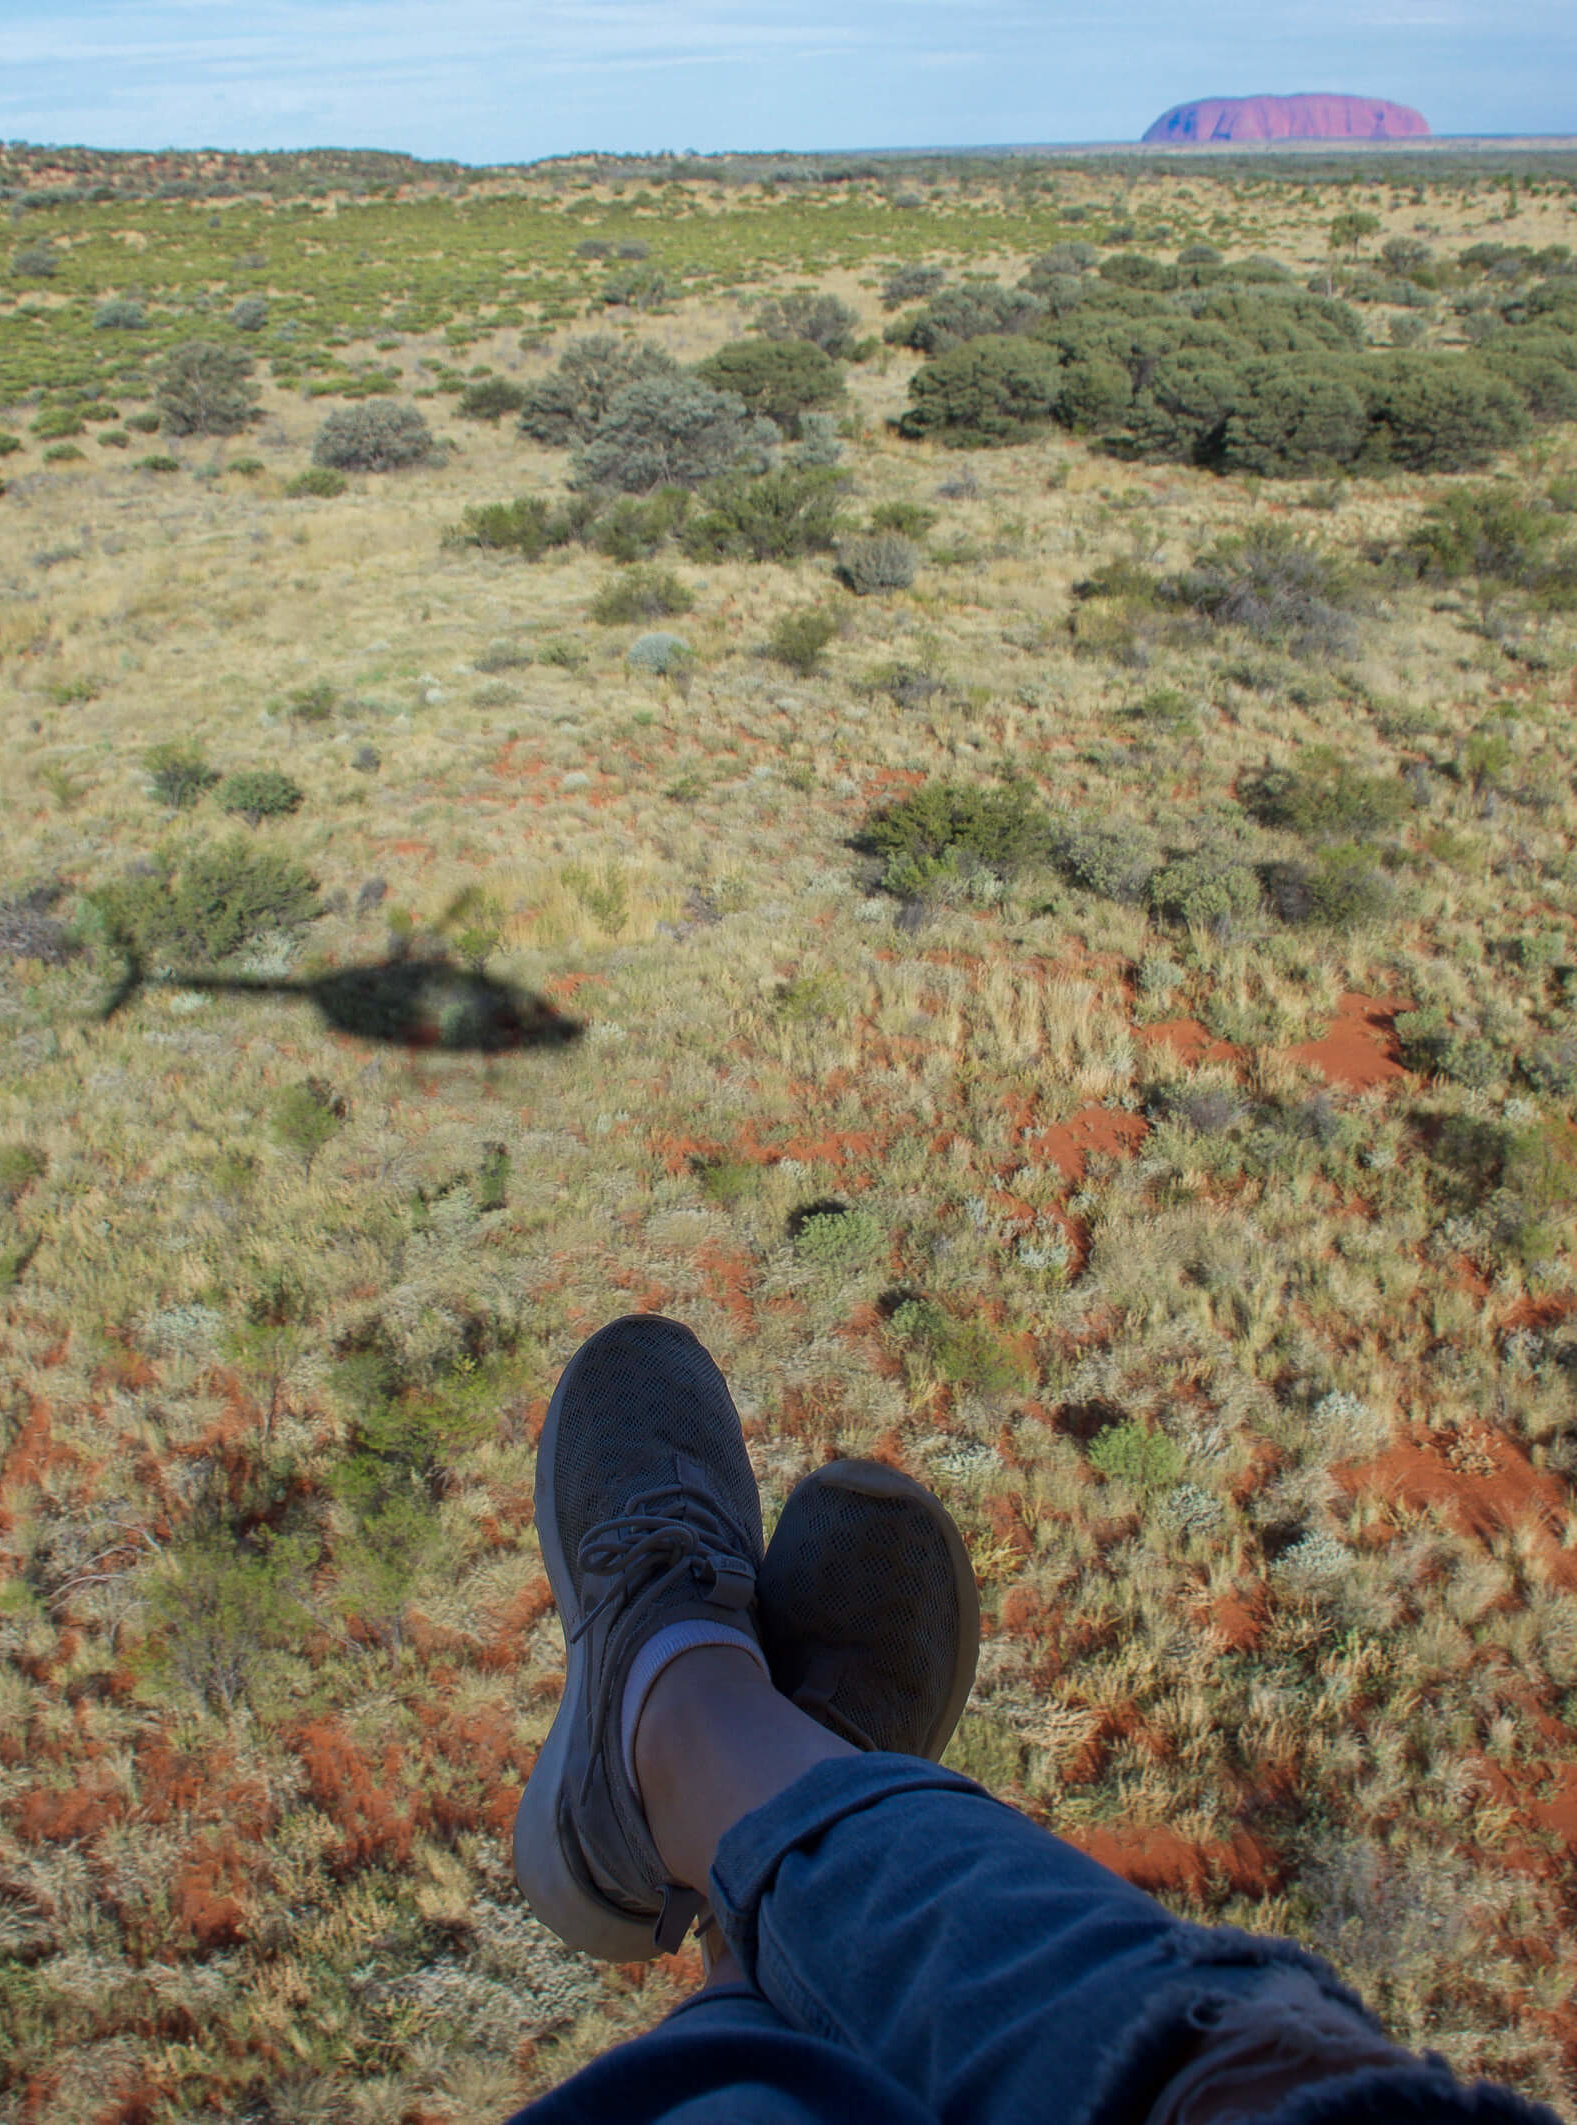 Feet hanging in the air with Helicopter shadow and Uluru in the background